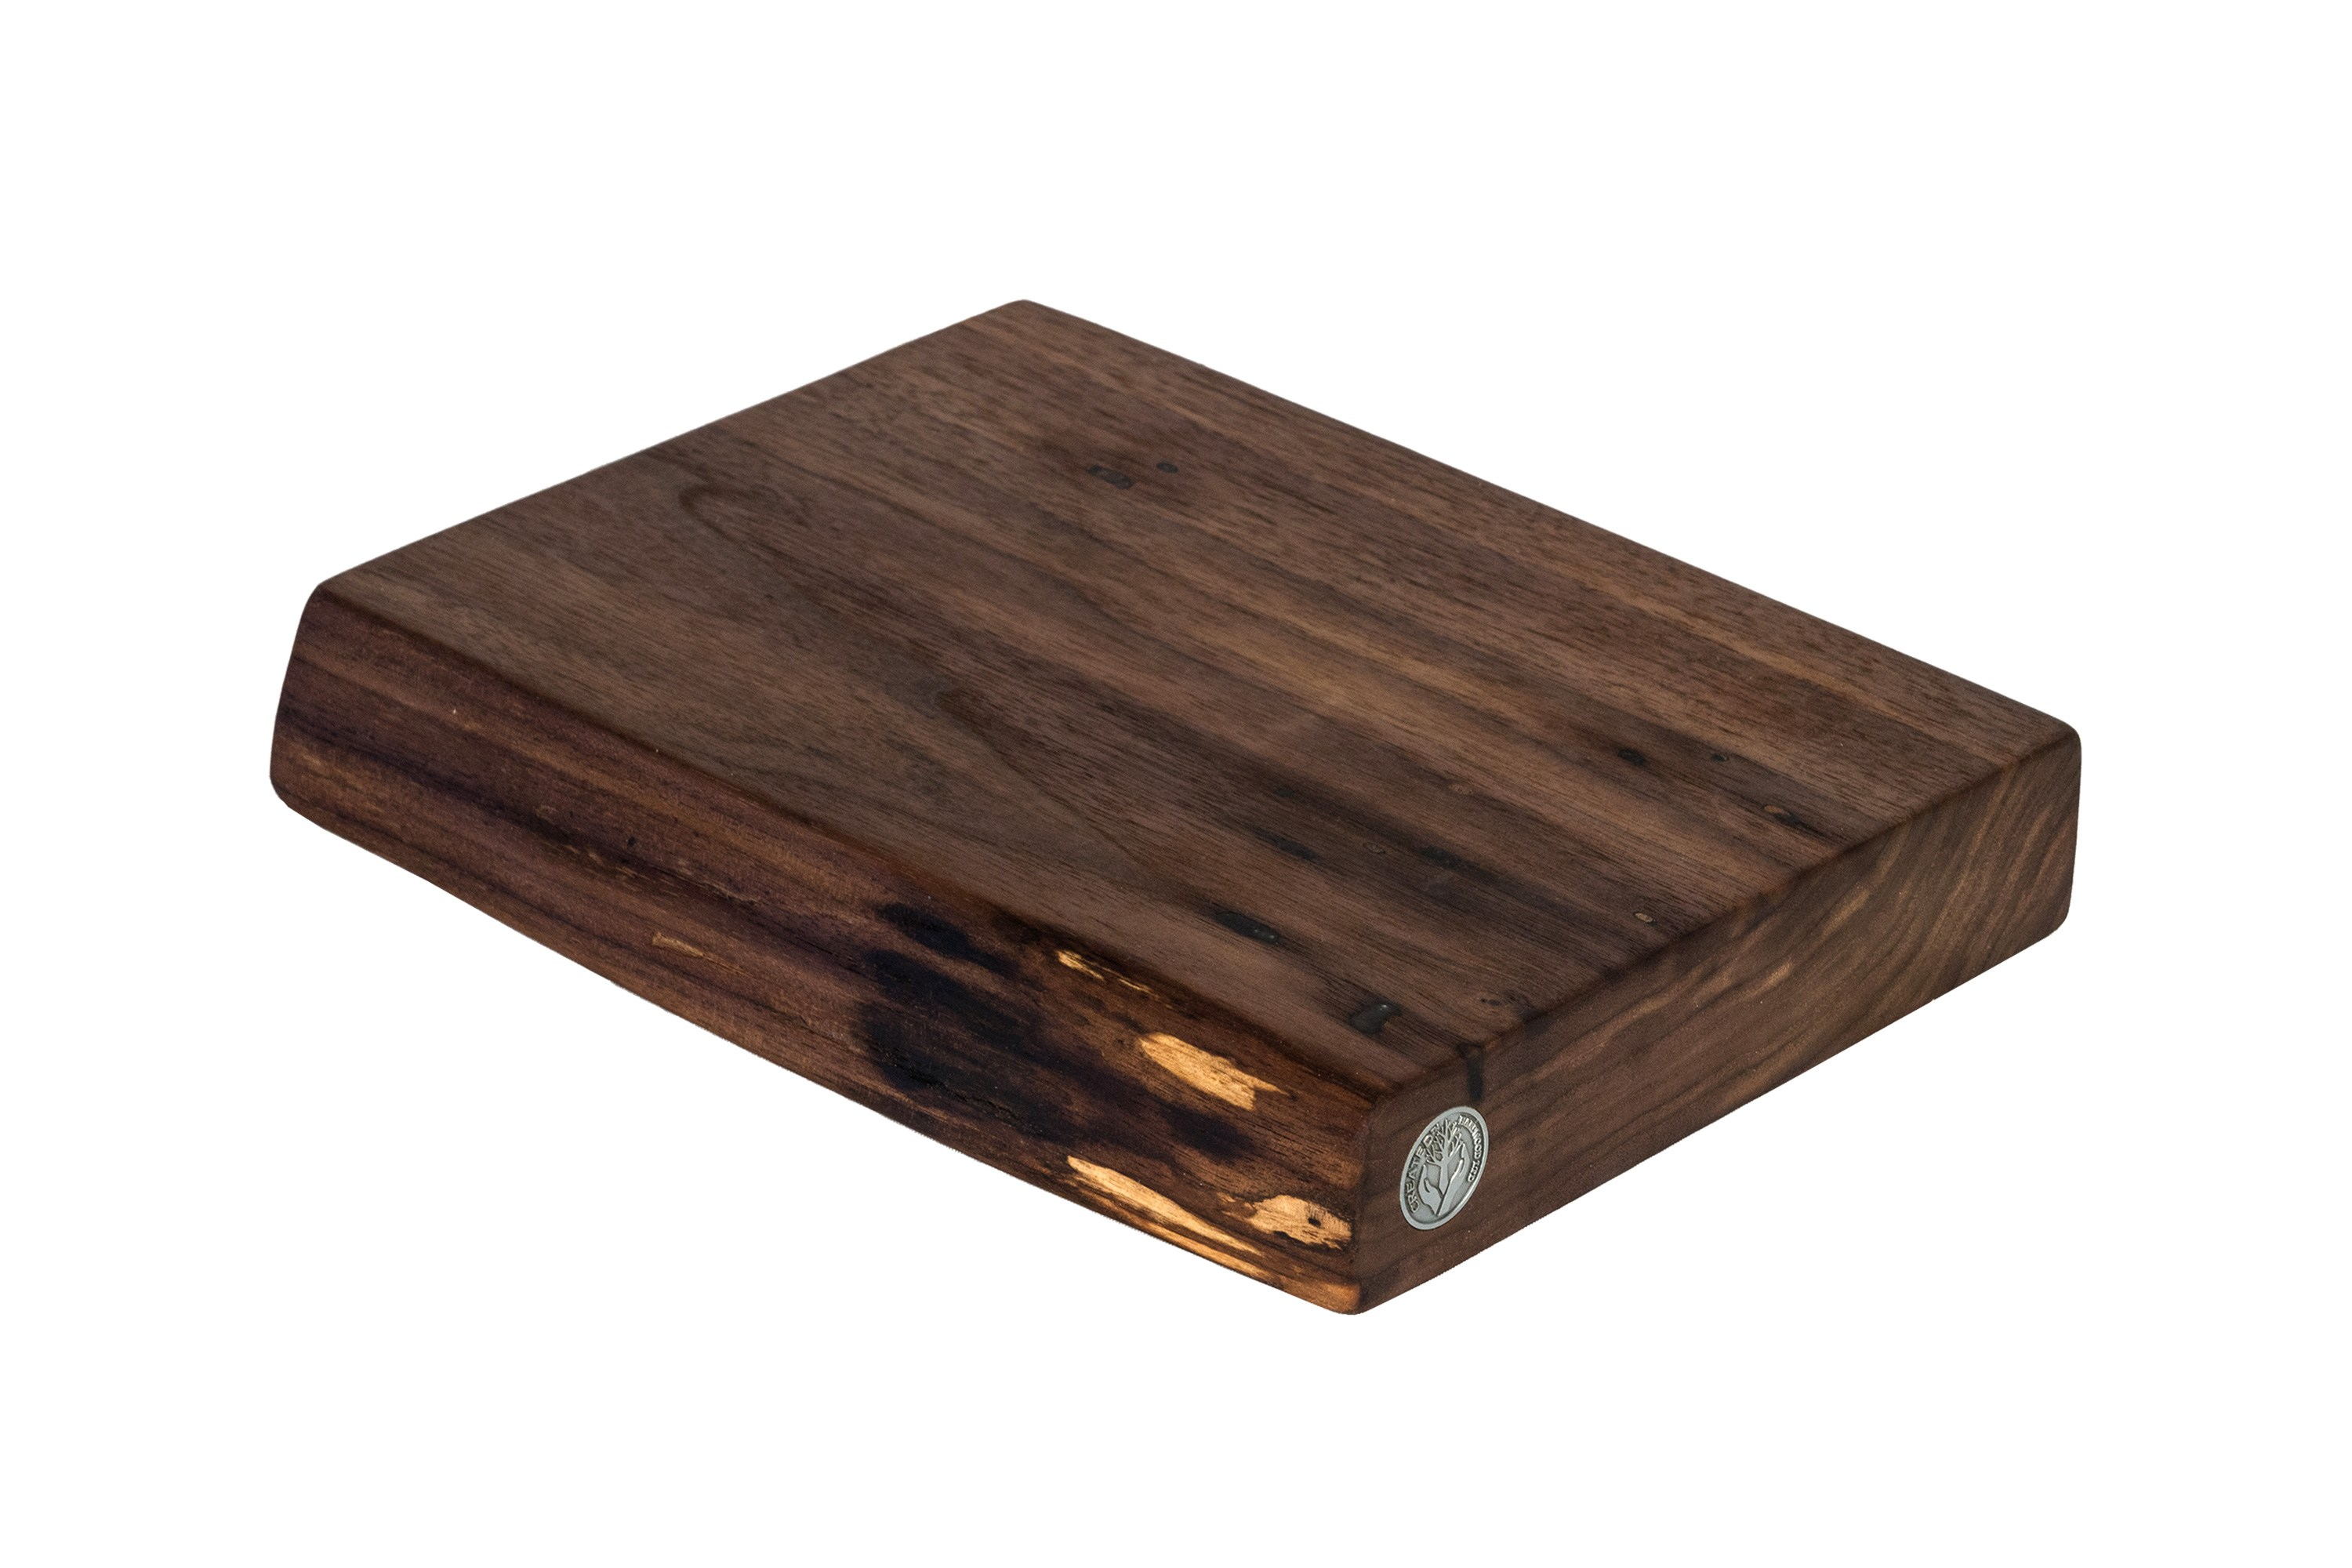 Live Edge Walnut Cutting Board #083- 12